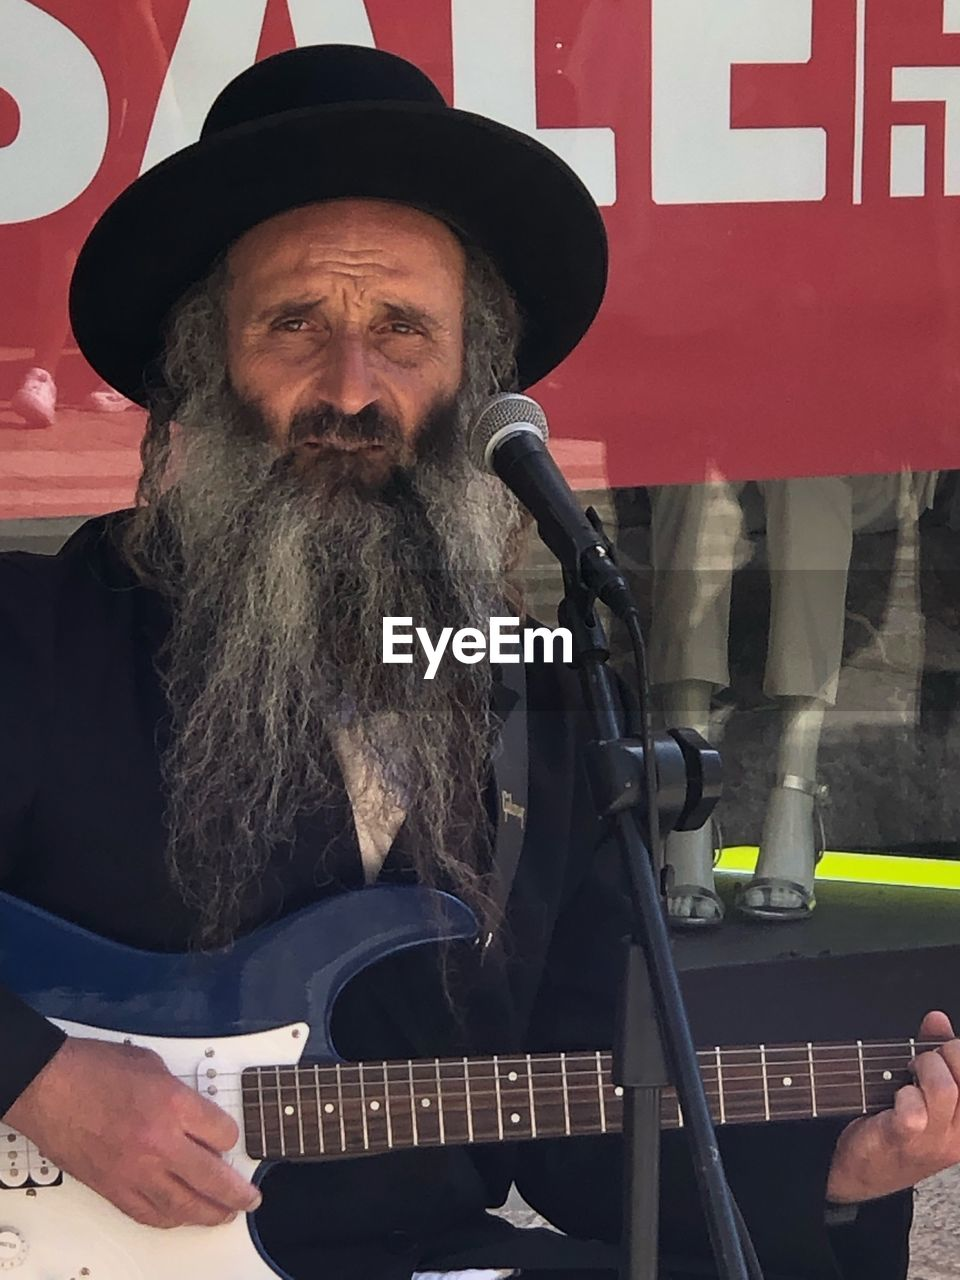 music, men, musical instrument, real people, musician, musical equipment, mature men, guitar, arts culture and entertainment, males, people, mature adult, beard, lifestyles, playing, facial hair, artist, front view, hat, electric guitar, plucking an instrument, entertainment occupation